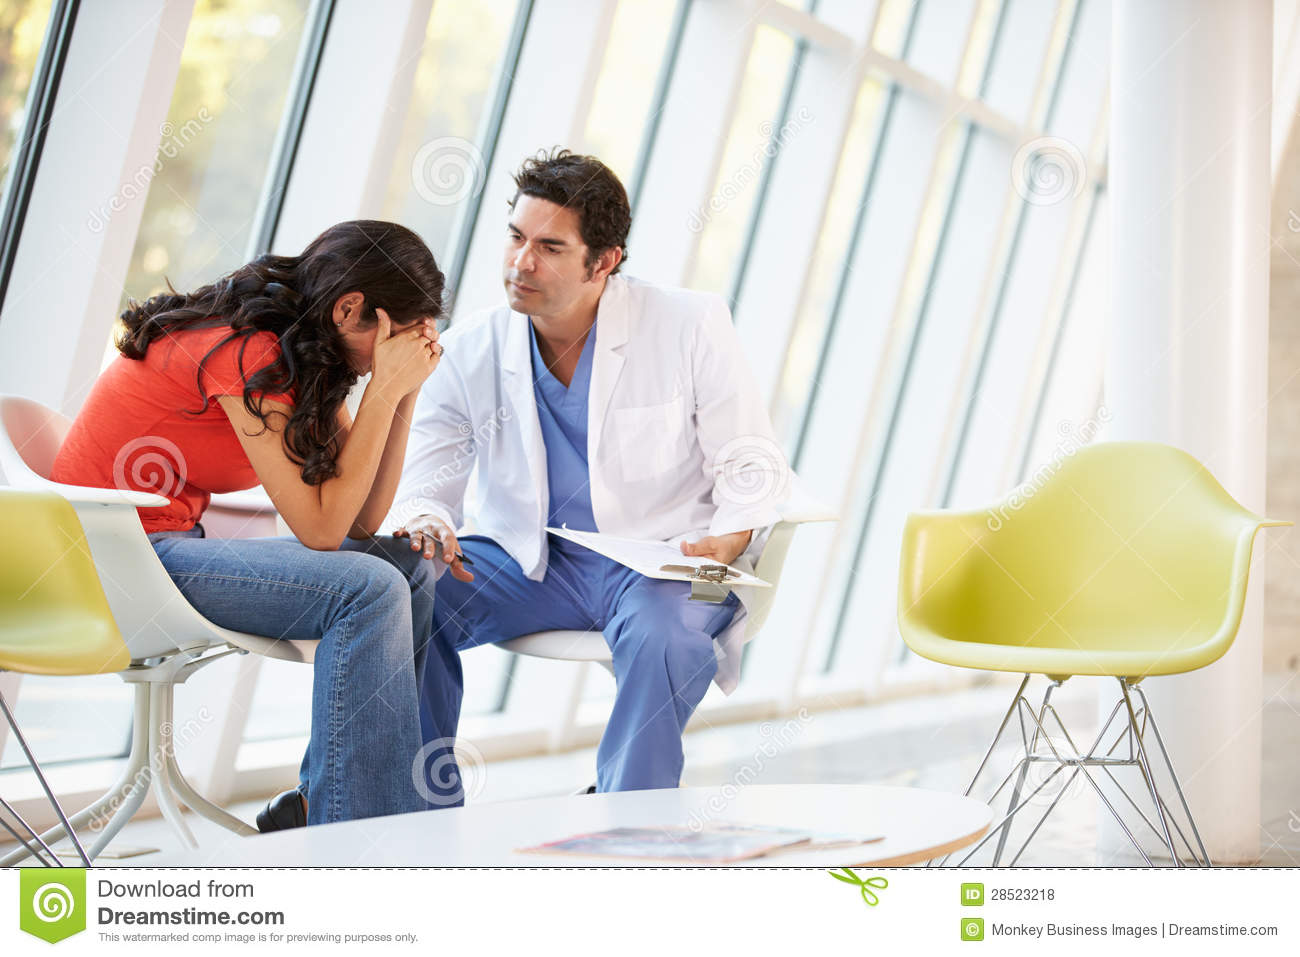 counselling in hospital setting Aipc specialises in the delivery of quality counselling courses, including its acclaimed diploma of counselling with campuses in sydney, melbourne, brisbane, adelaide, perth and sunshine coast you can study internally, online or a blend of both.